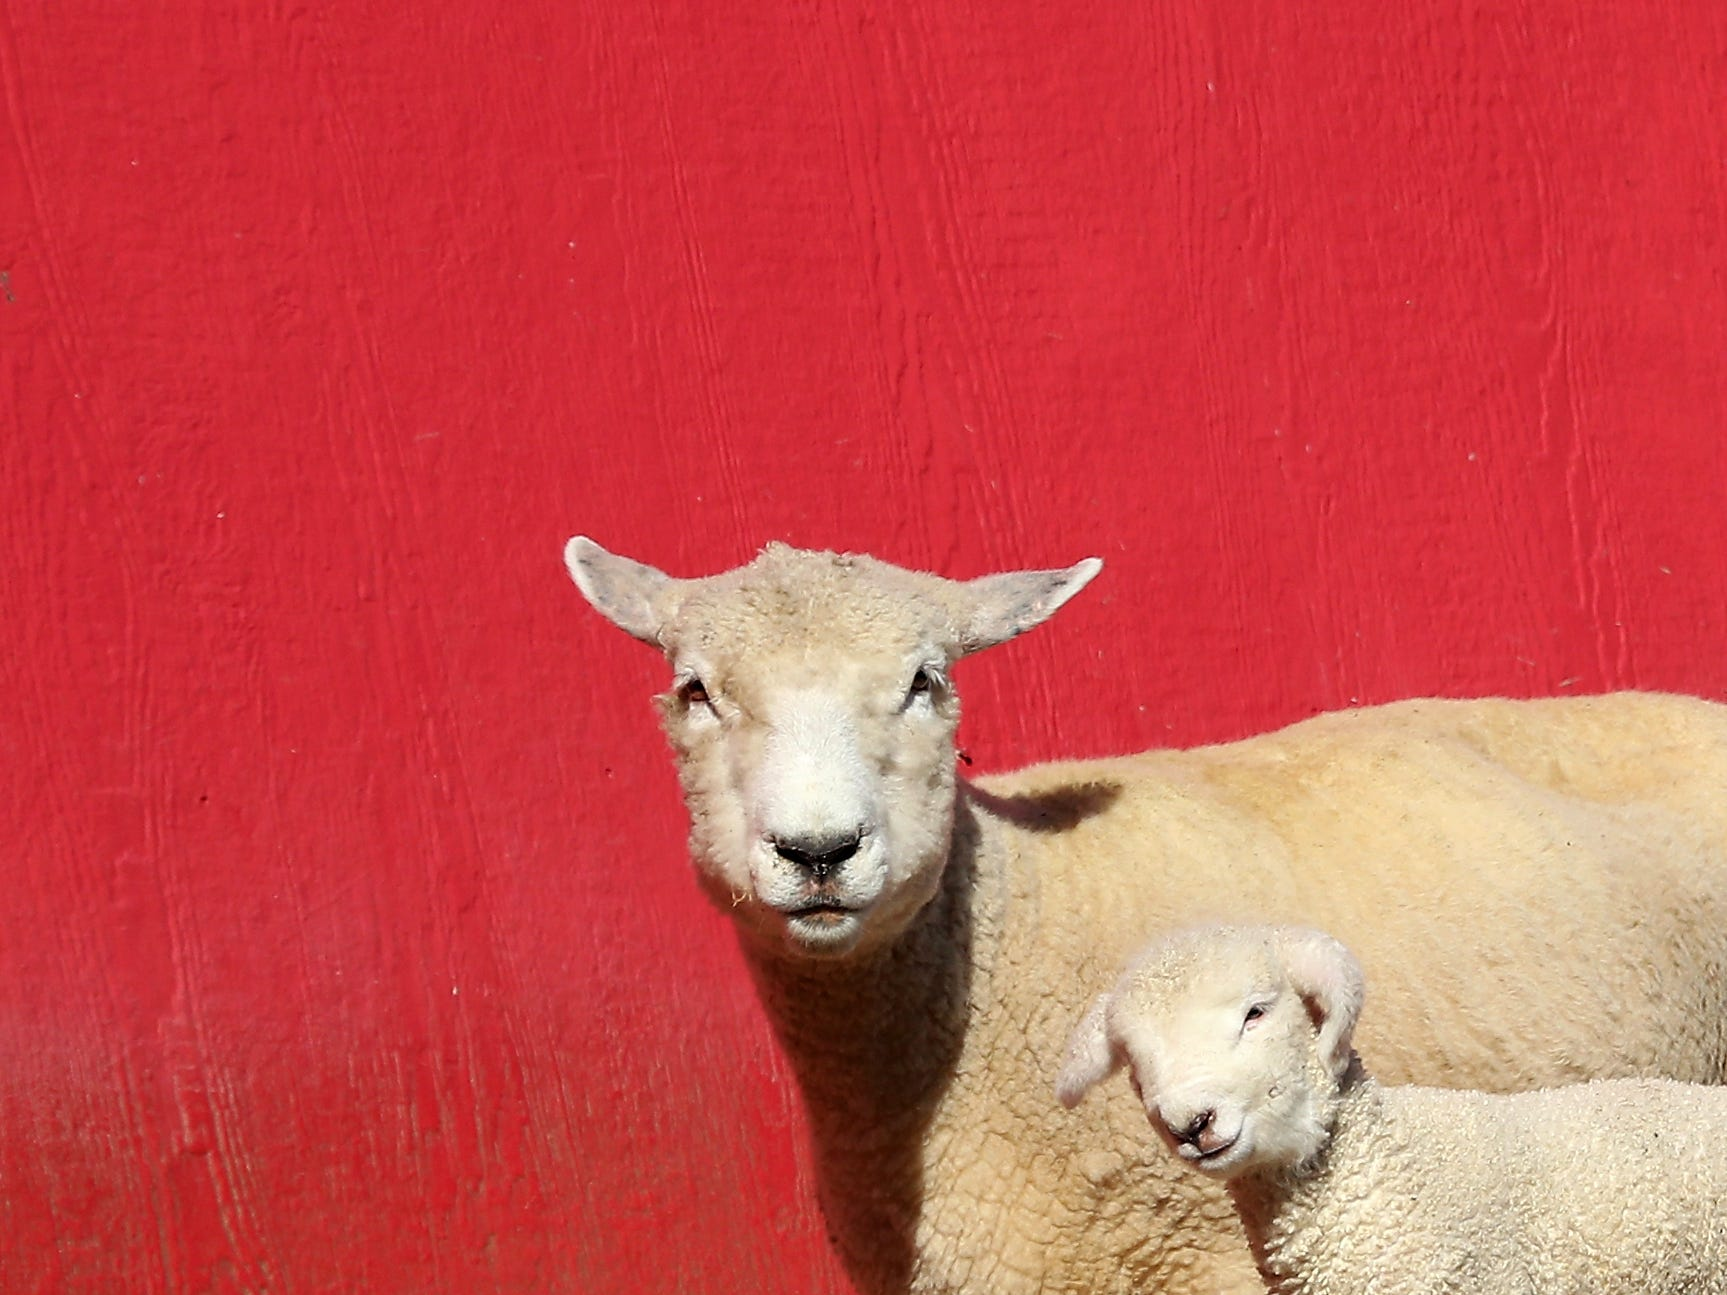 A lamb and its mother wander past the bright red barn at Scandia Creek Farm in Poulsbo on March 19, 2019.